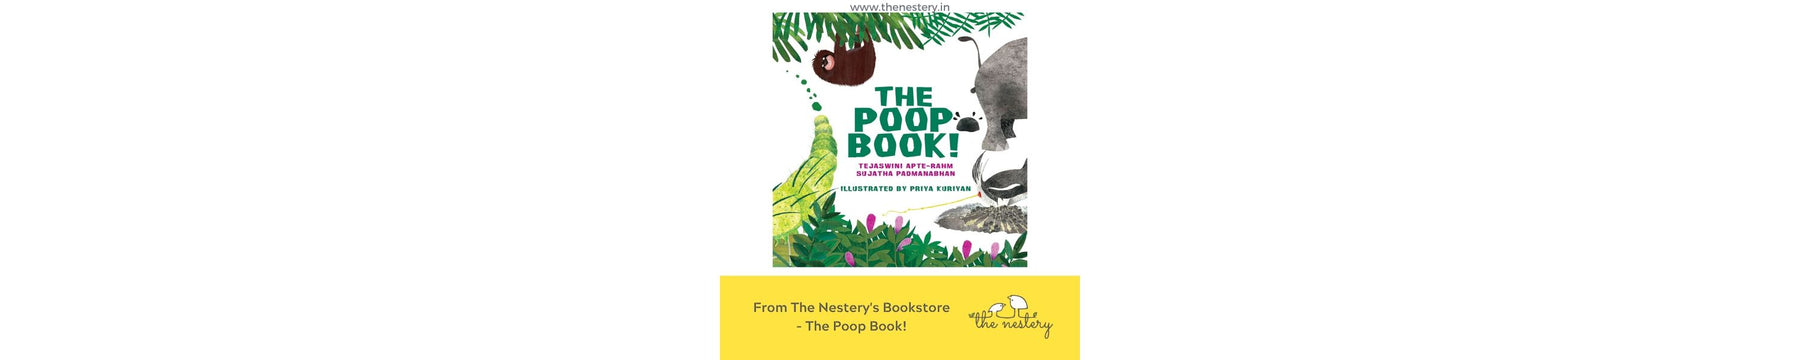 Book Review - The Poop Book!